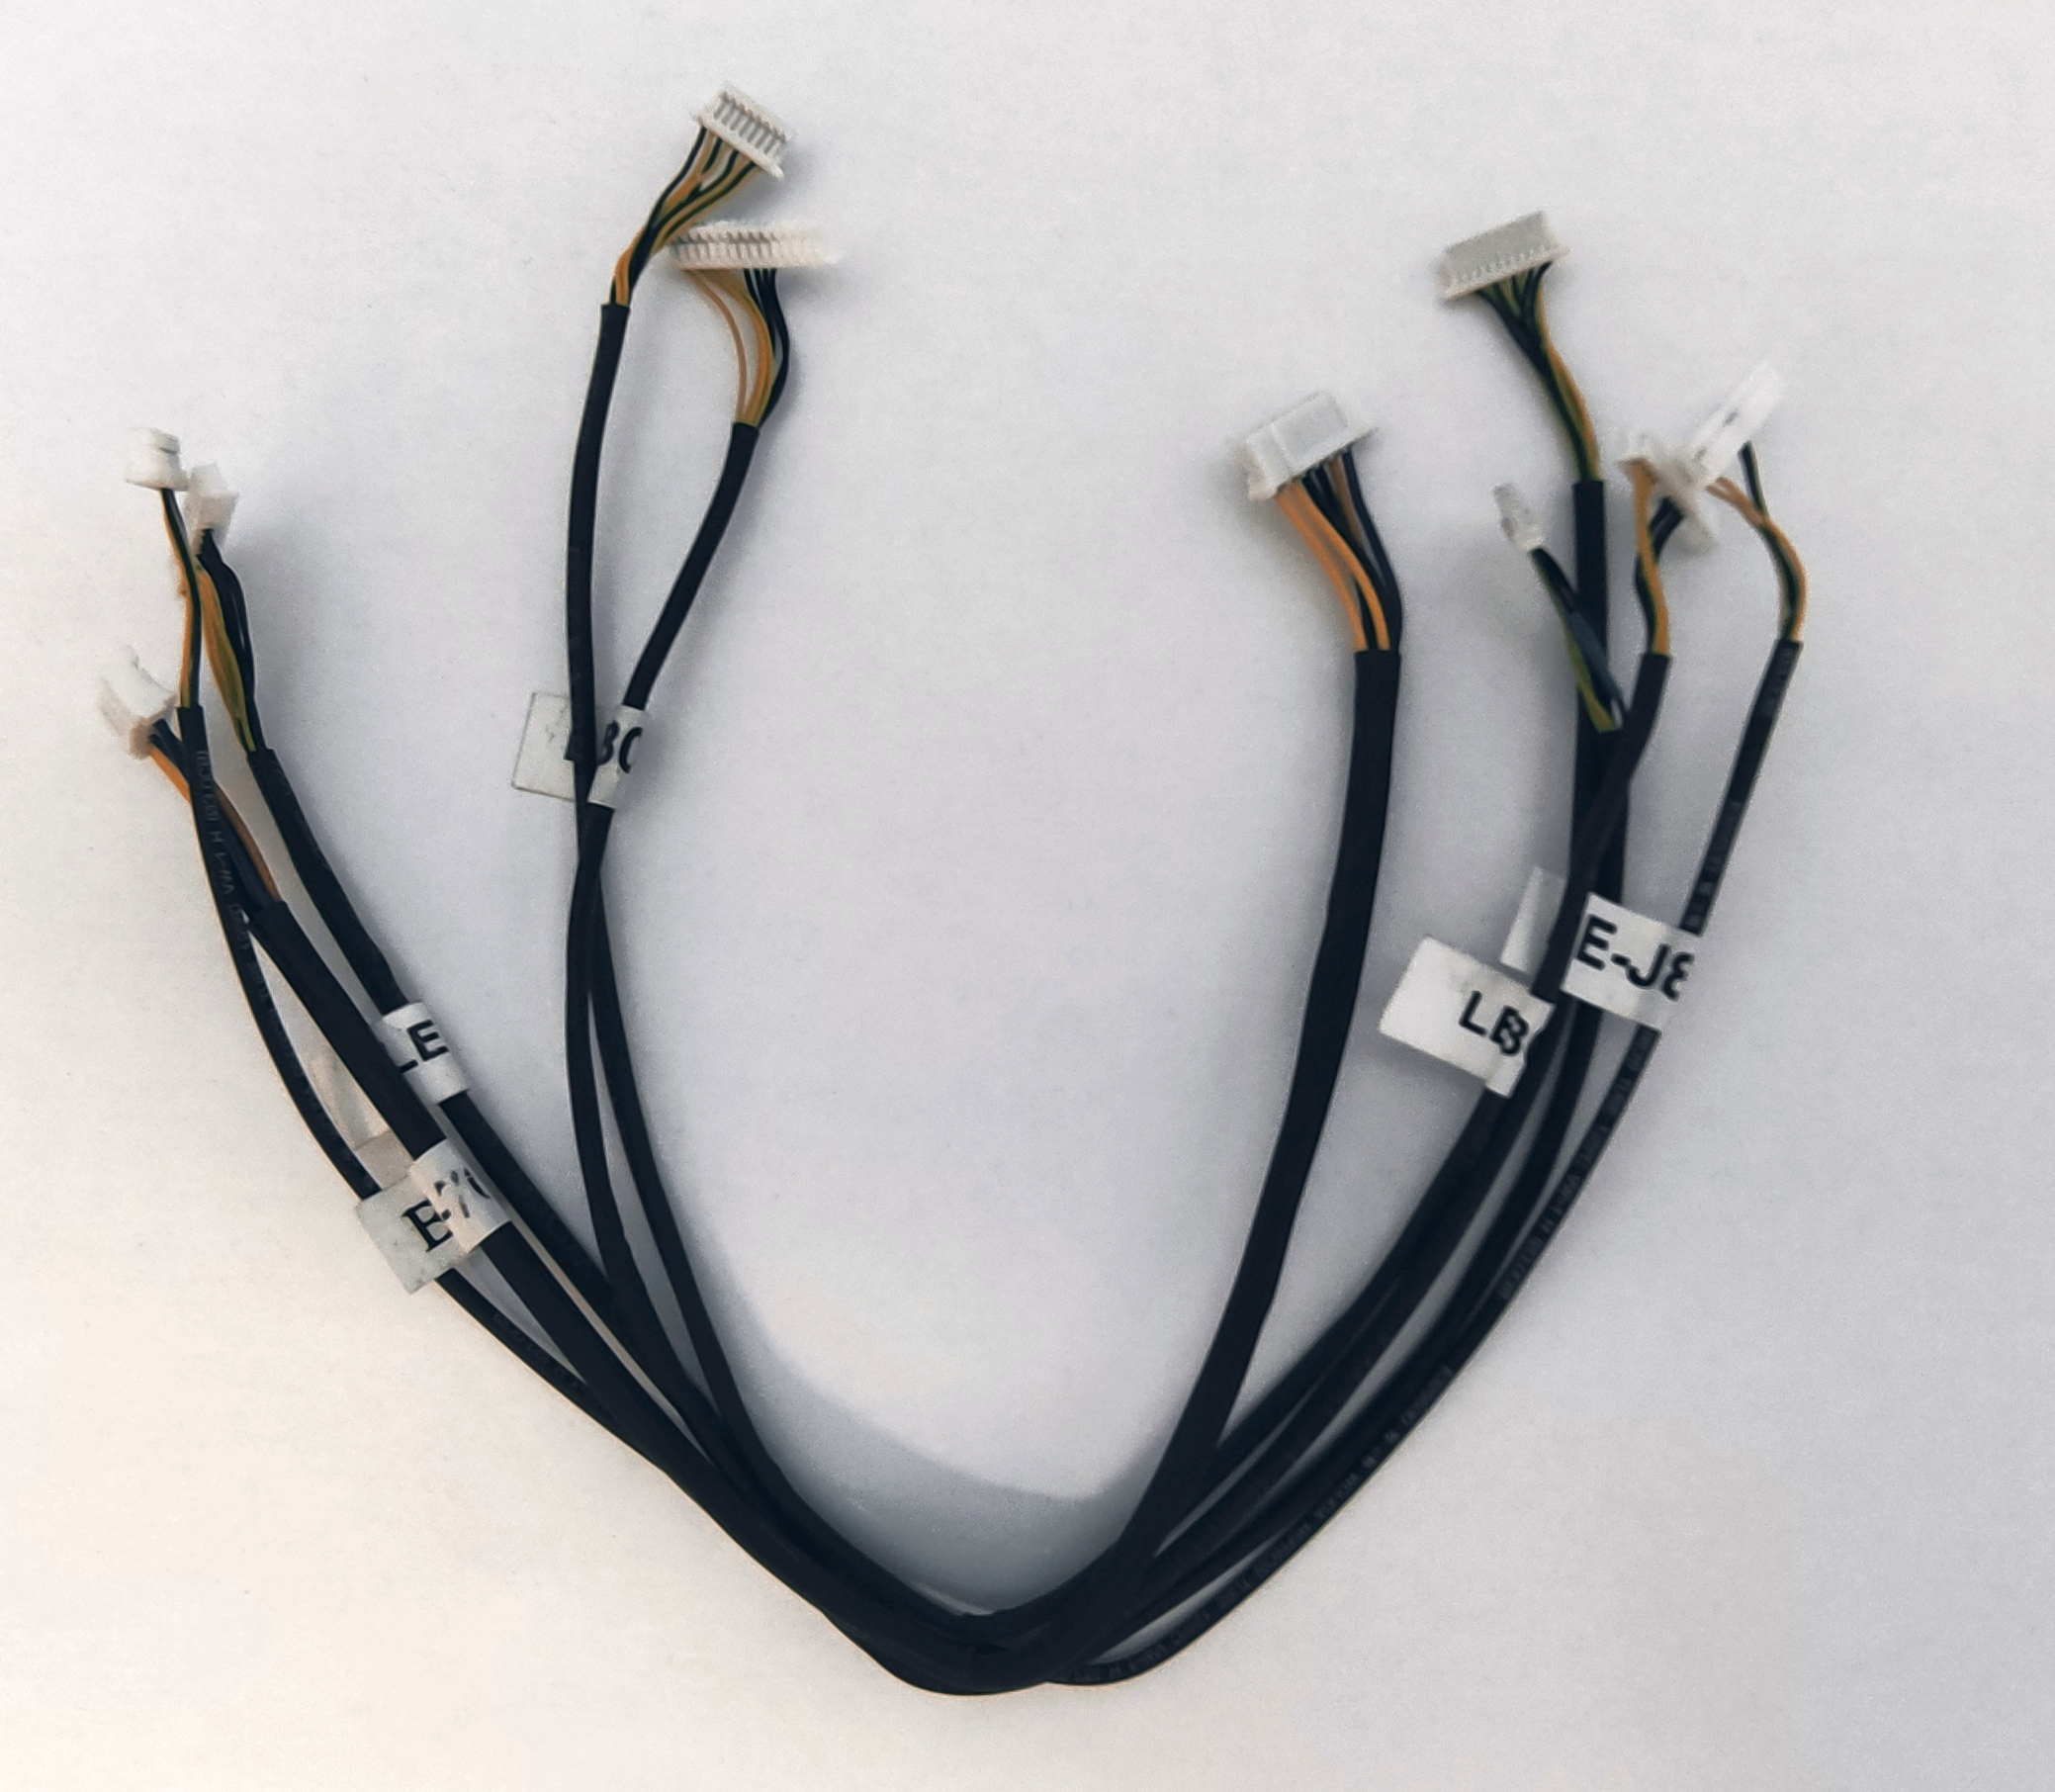 BT-cable-70634